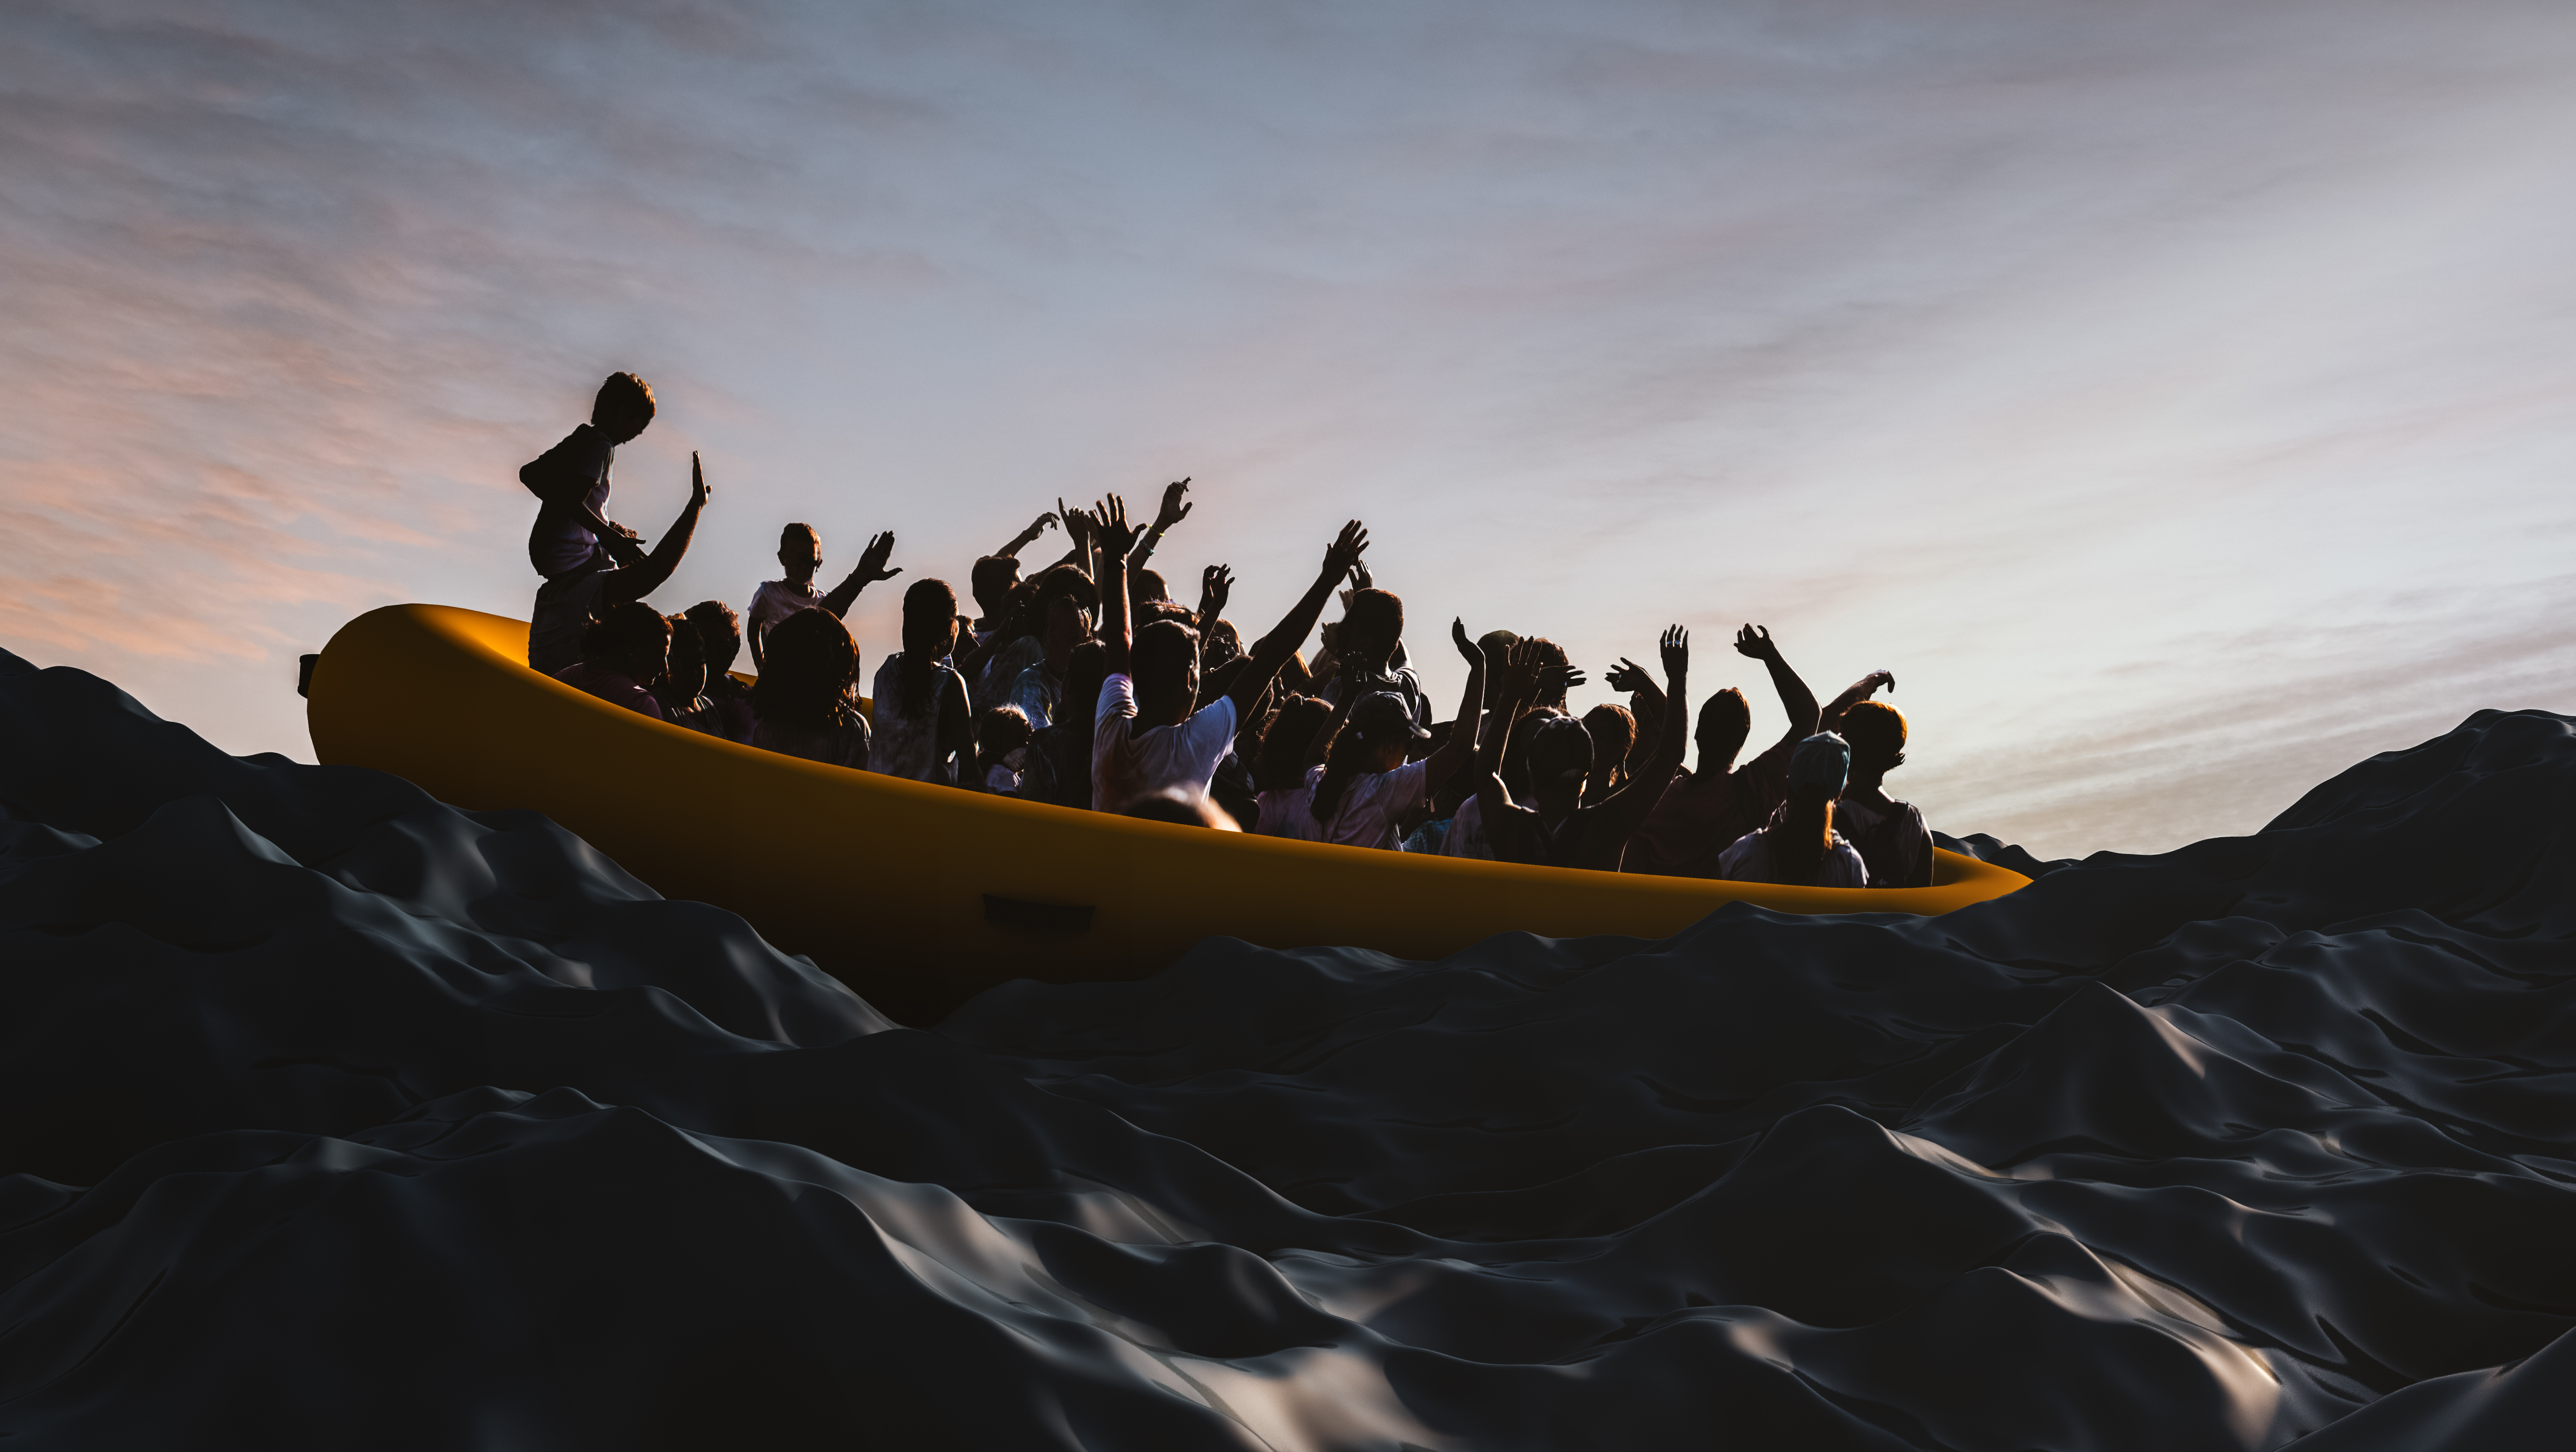 Illegal Migrant overcrowded boat